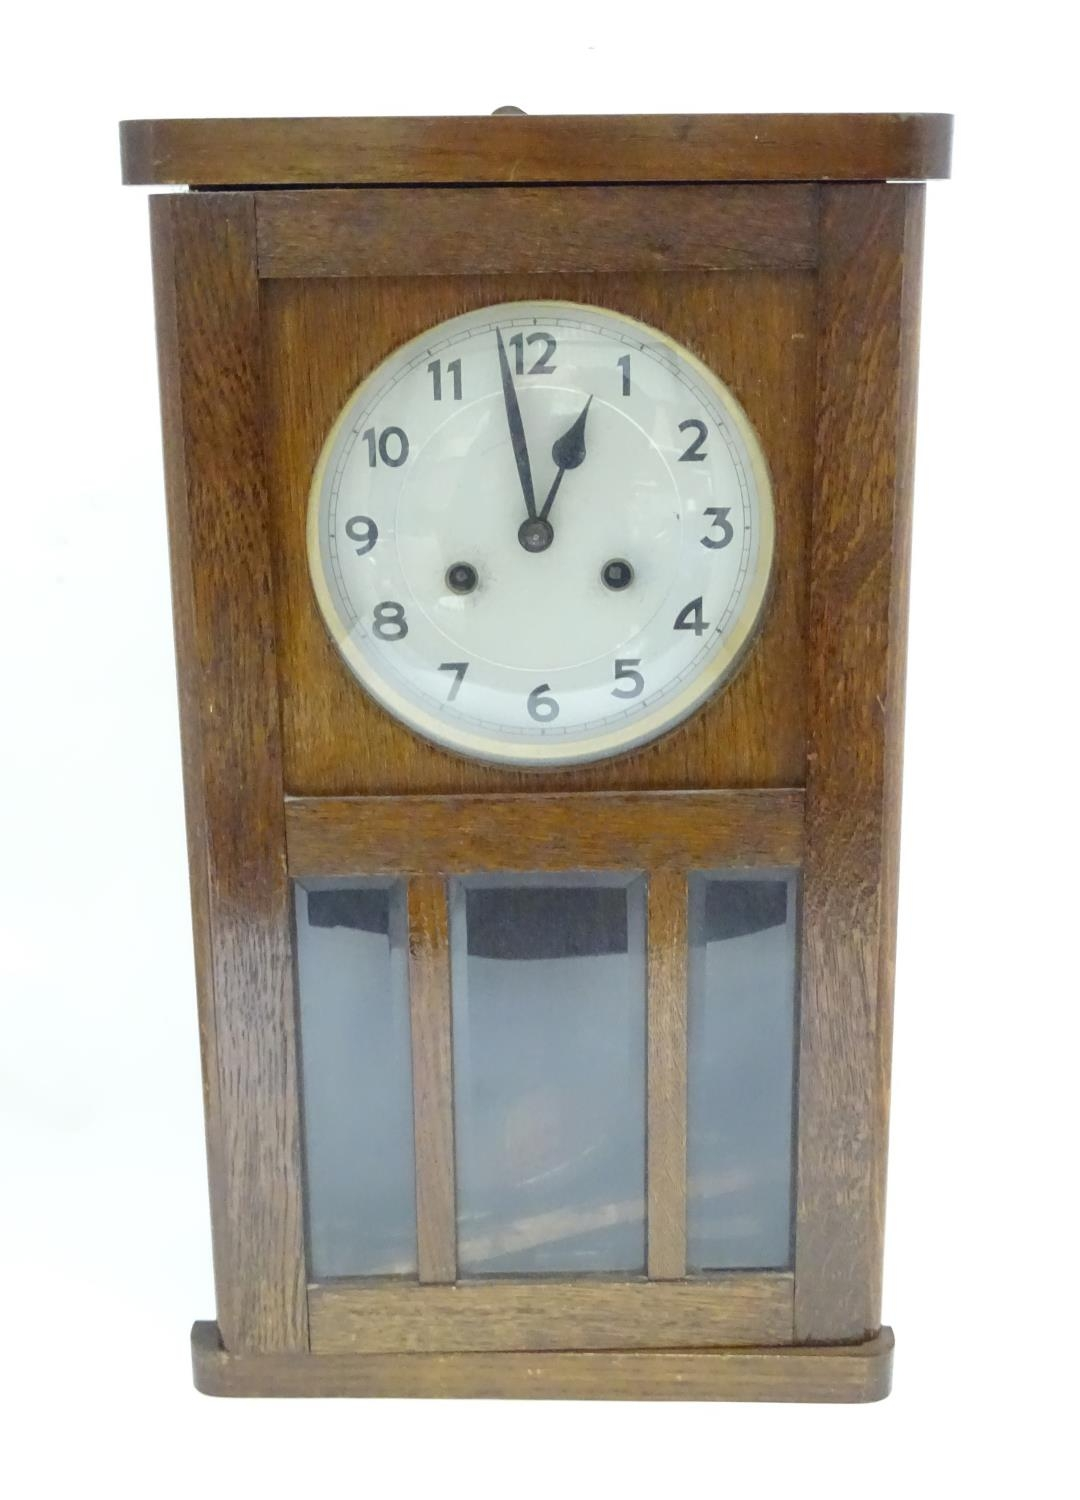 A 20thC English wall clock Please Note - we do not make reference to the condition of lots within